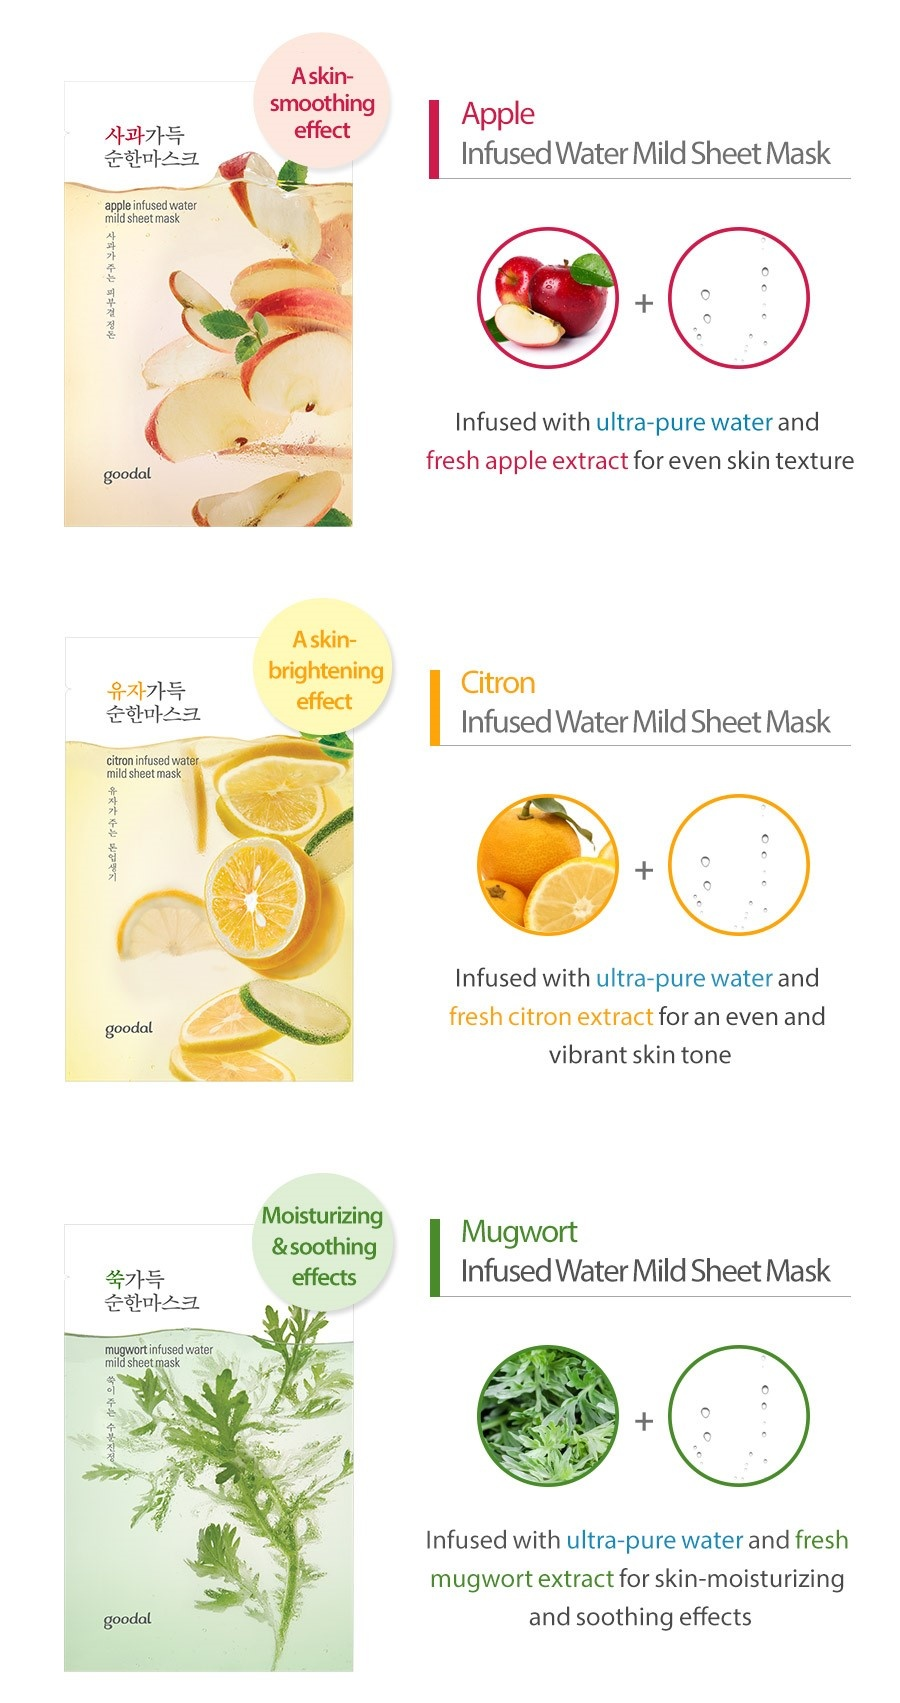 citron infused water mild sheet mask-5